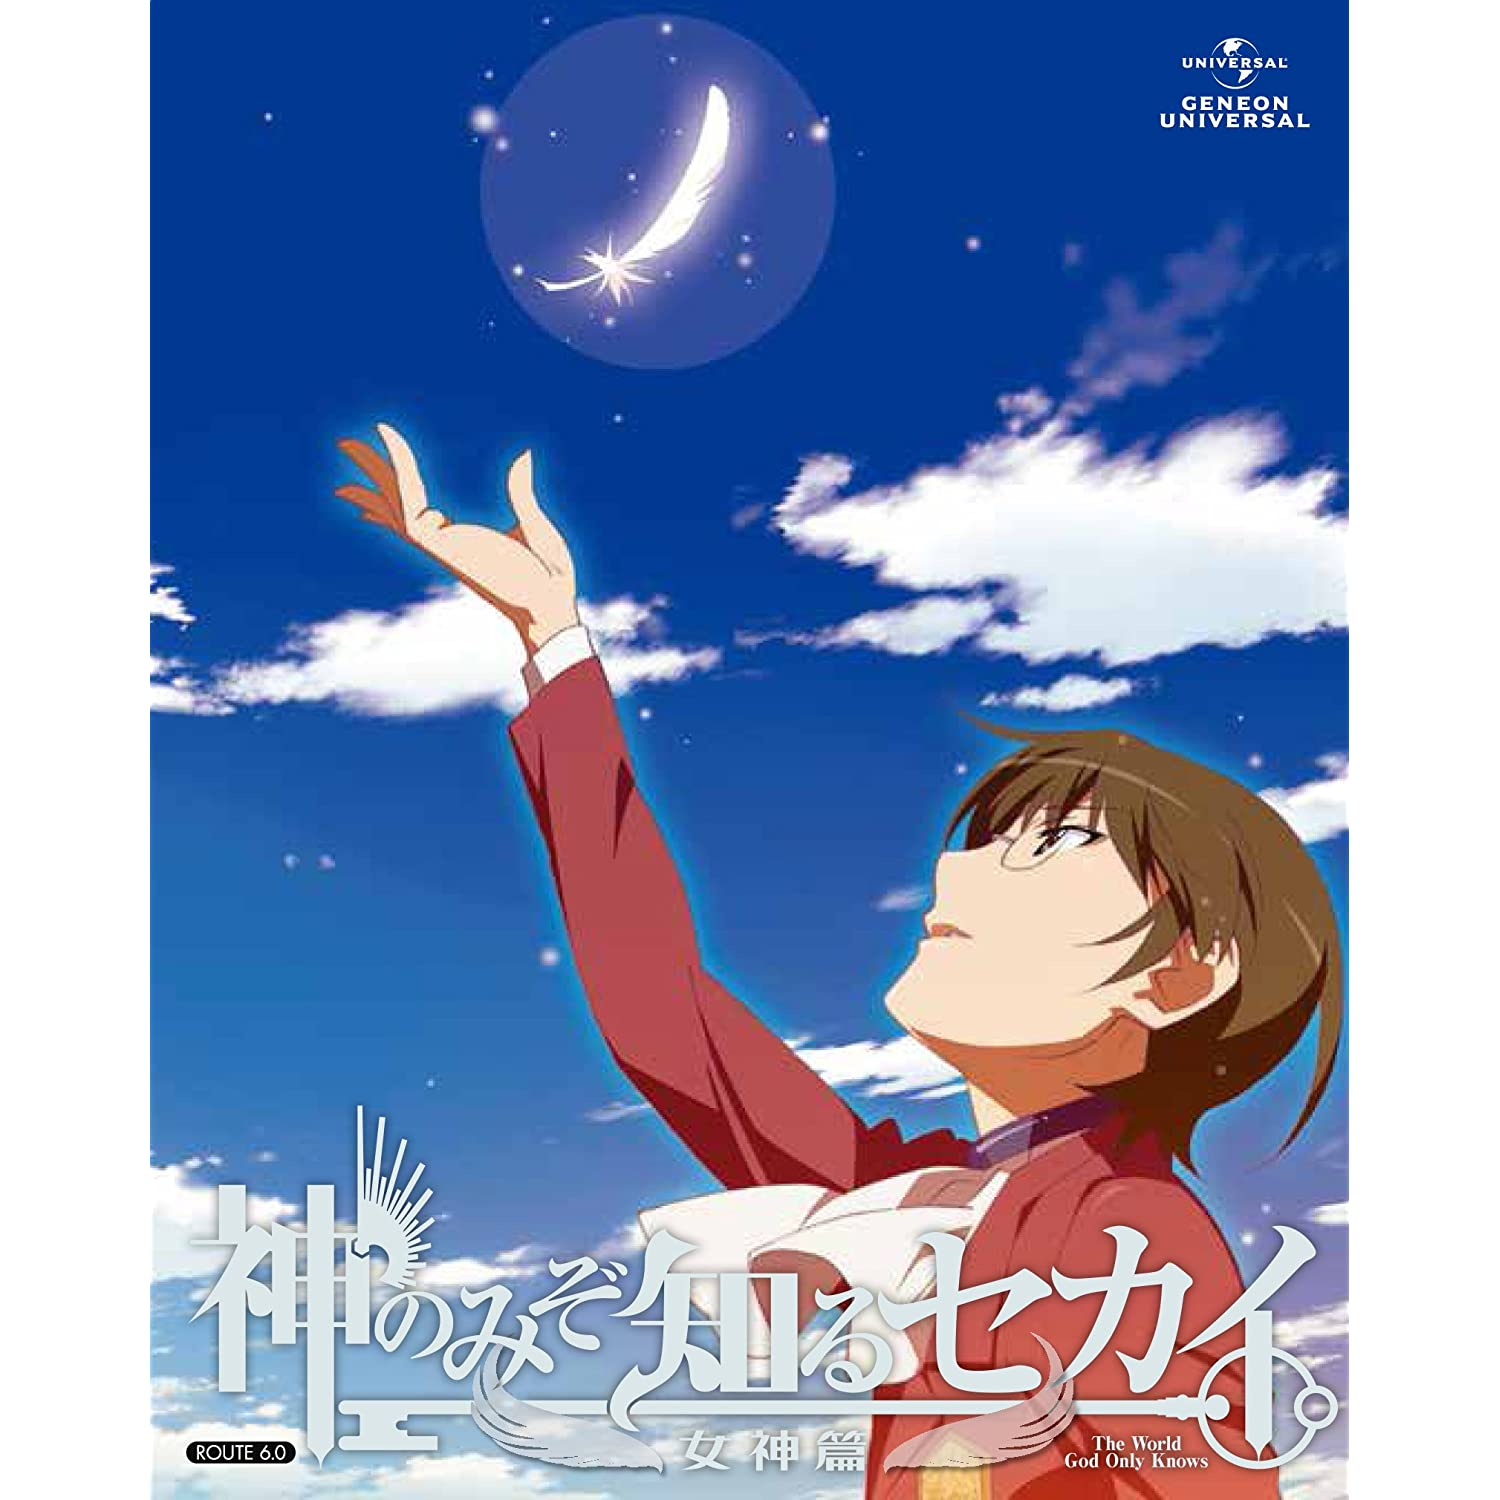 [百度][只有神知道的世界 第三季][女神篇+OVA][BDrip][1080P x264 flac][MKV][18.6G]